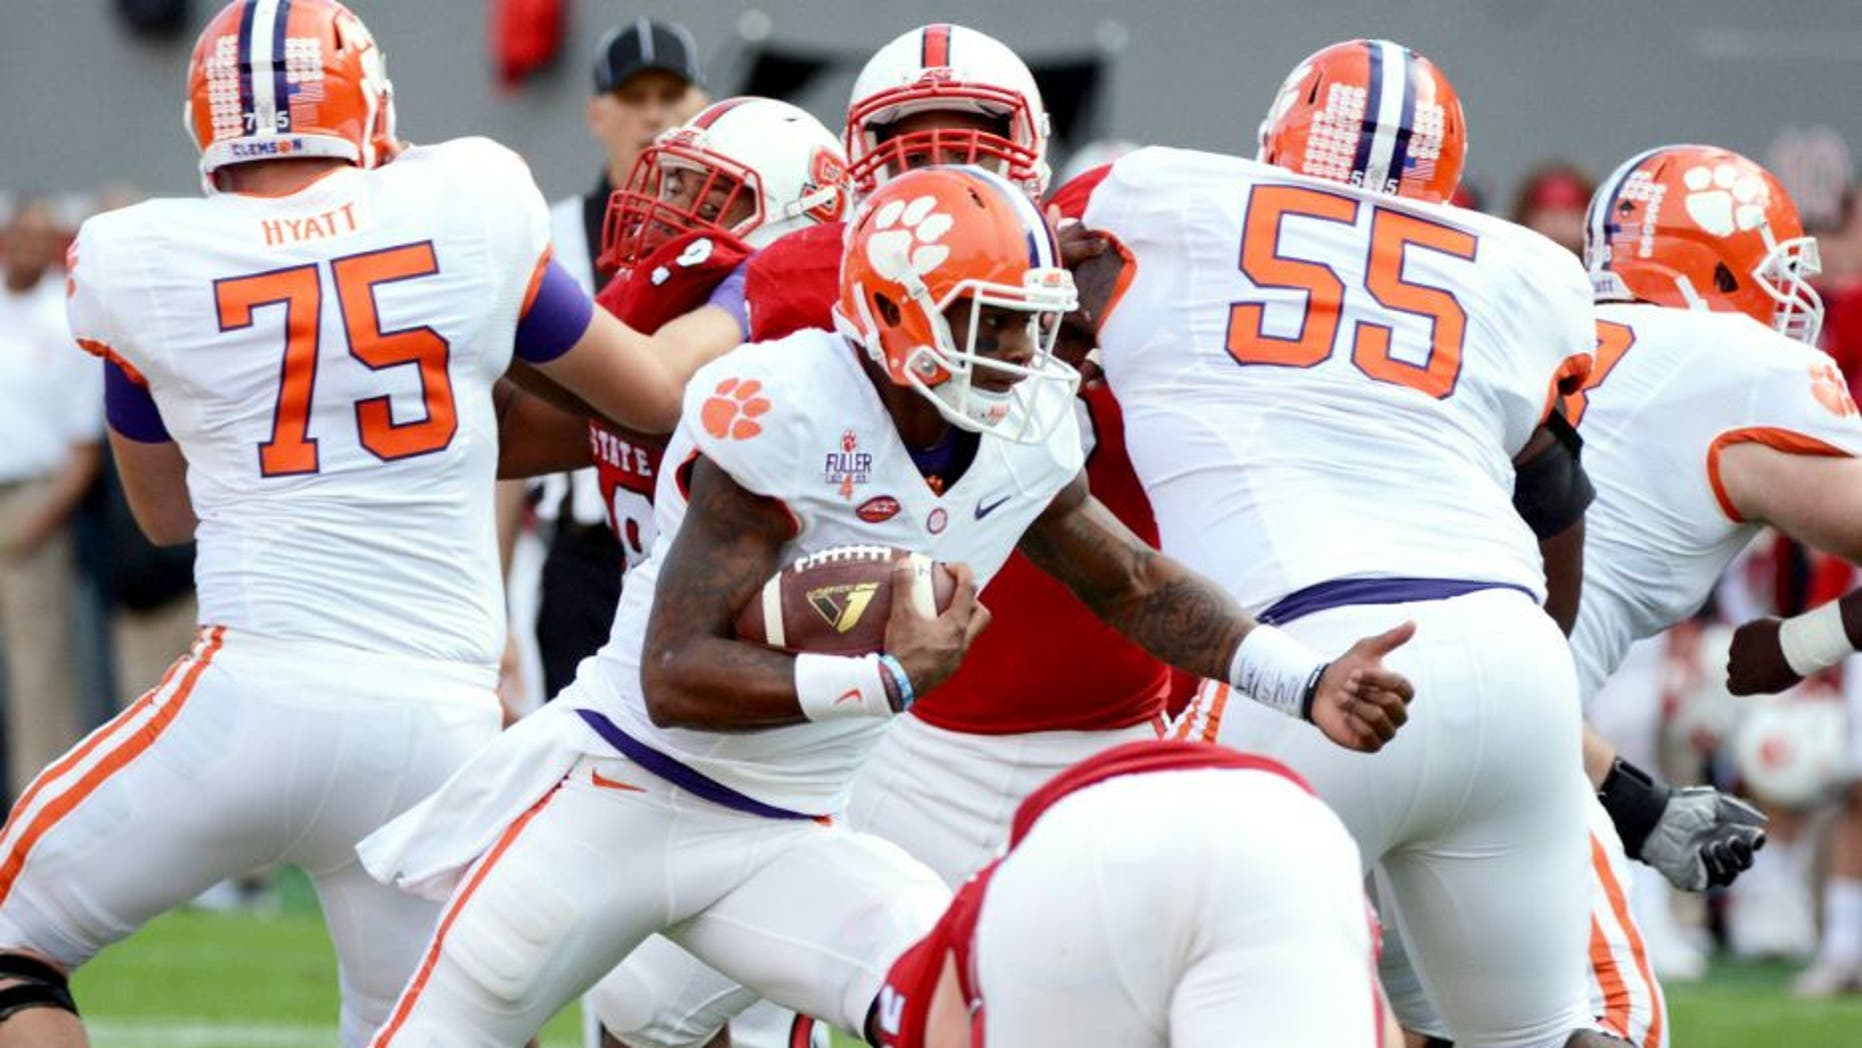 Oct 31, 2015; Raleigh, NC, USA; Clemson Tigers quarterback Deshaun Watson (4) runs the ball during the first half against the North Carolina State Wolfpack at Carter Finley Stadium. Mandatory Credit: Rob Kinnan-USA TODAY Sports